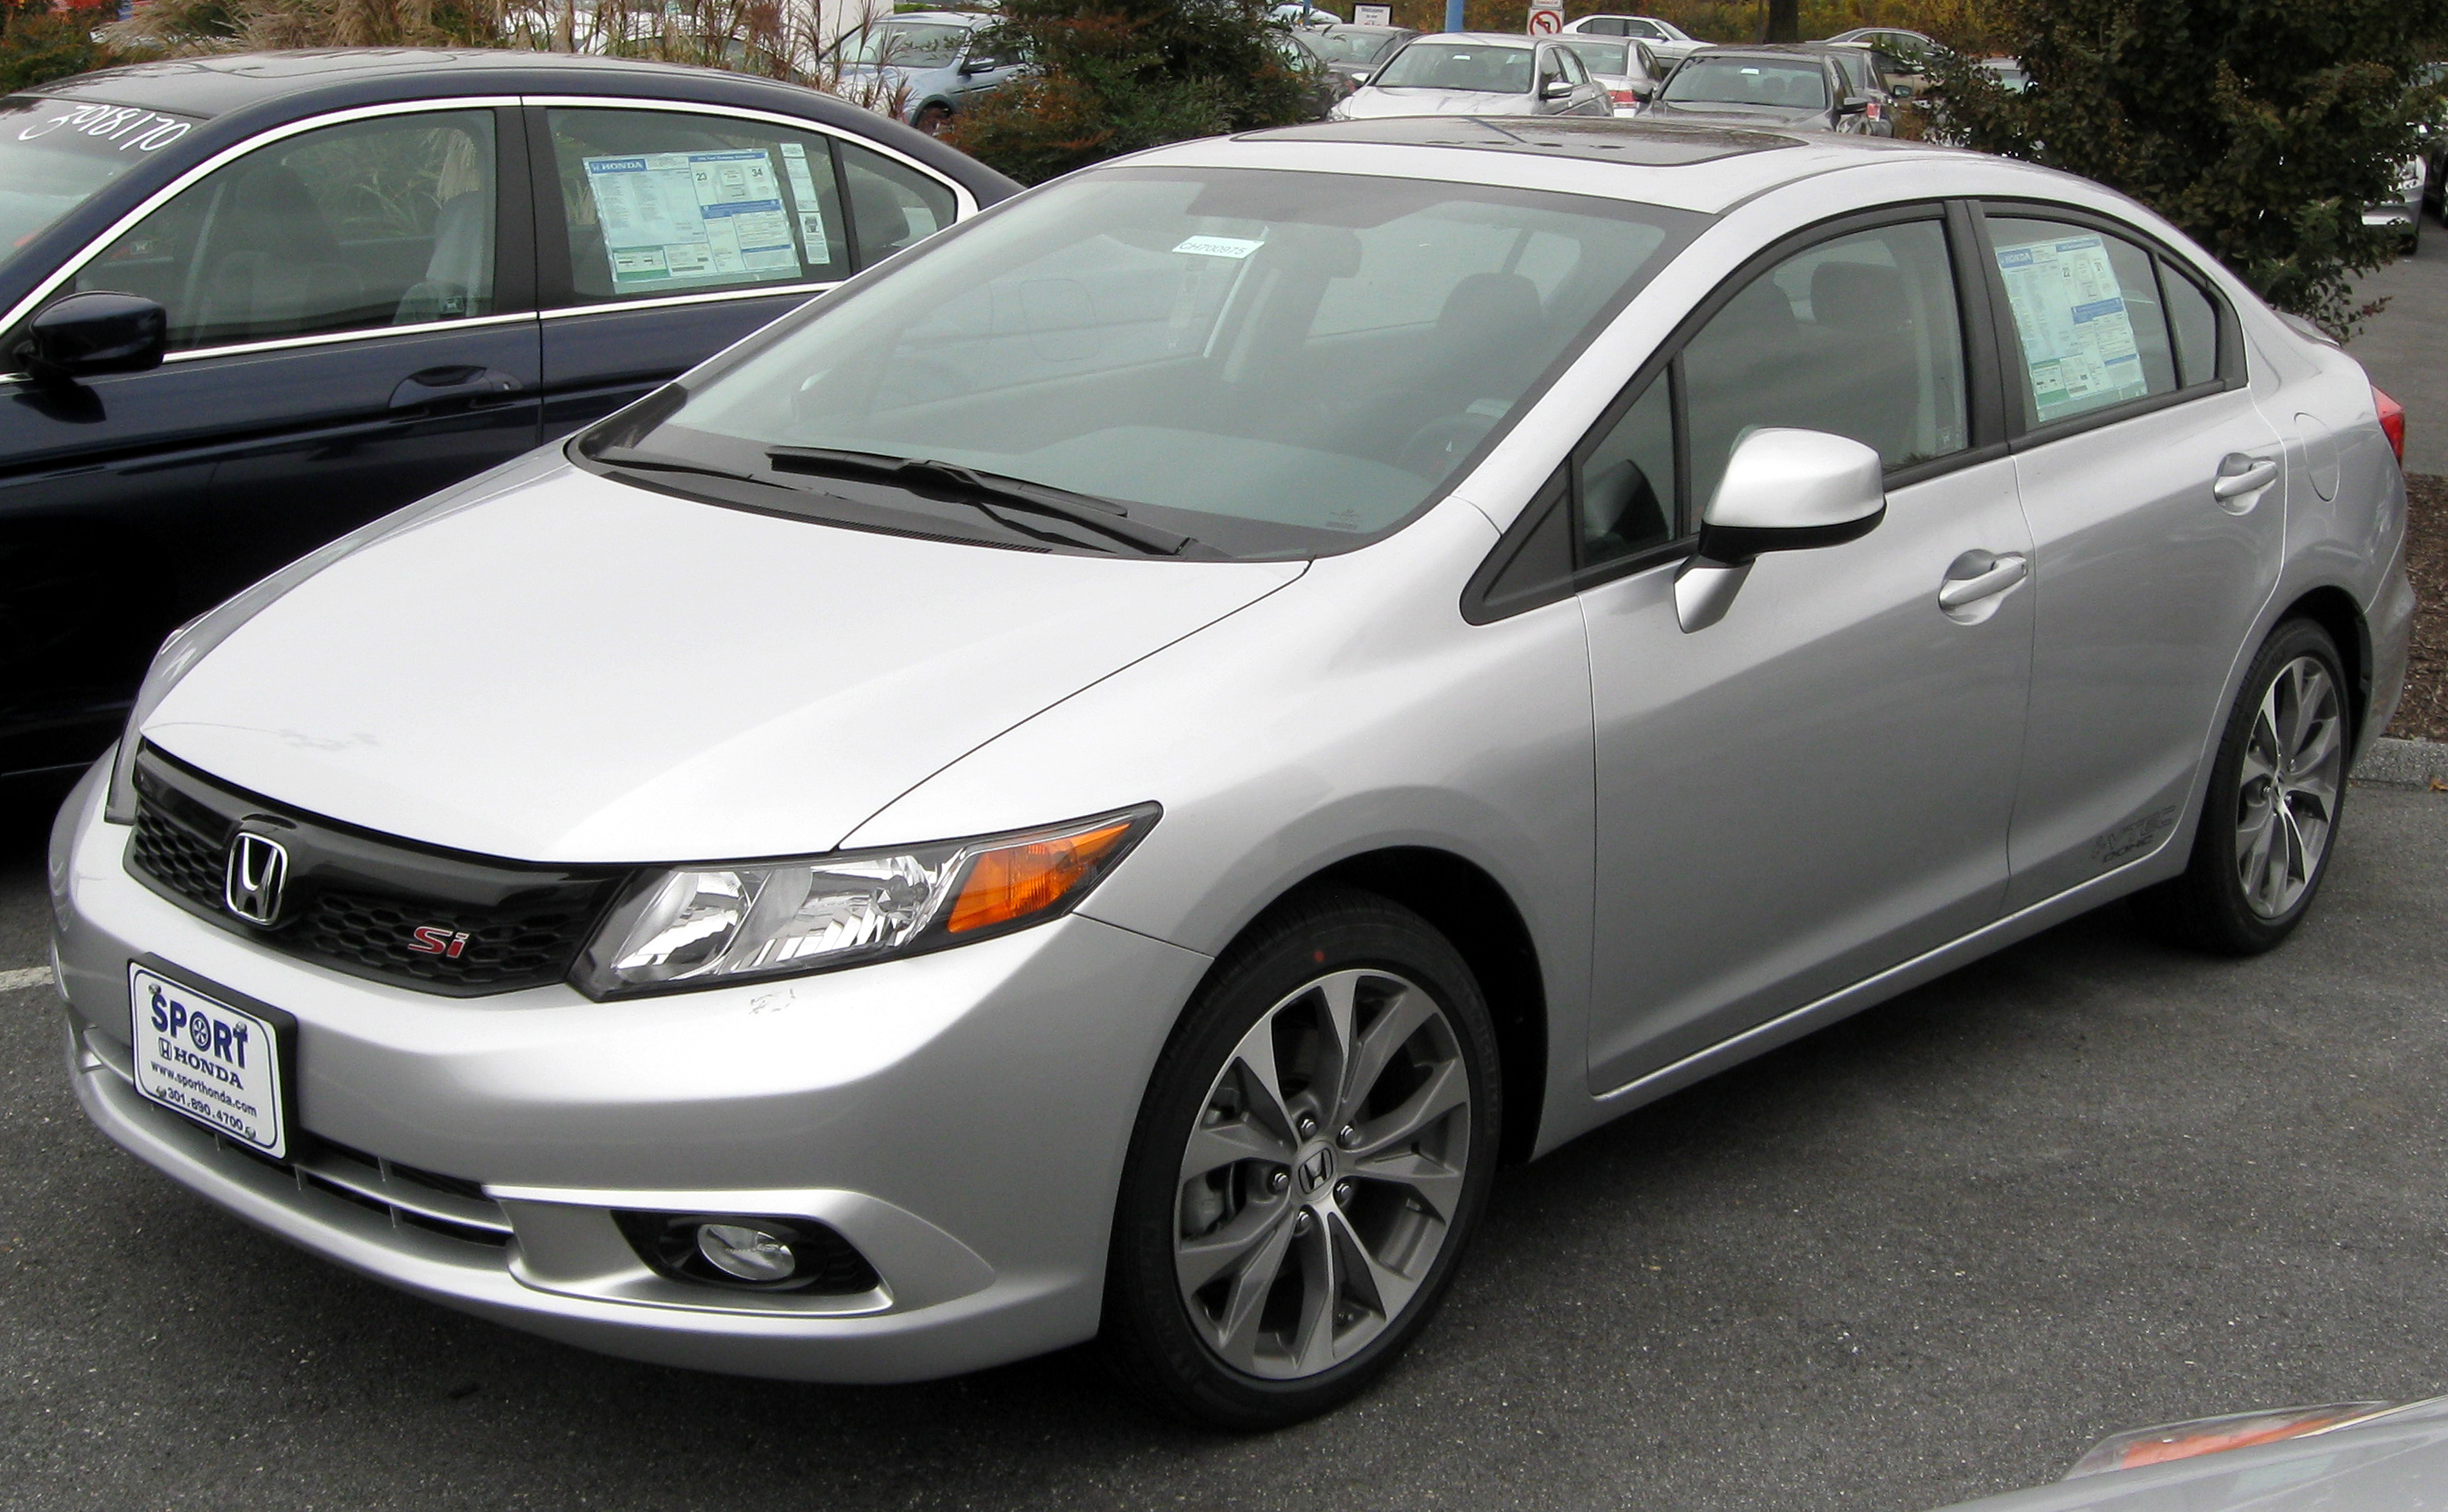 2011 Honda Civic #7